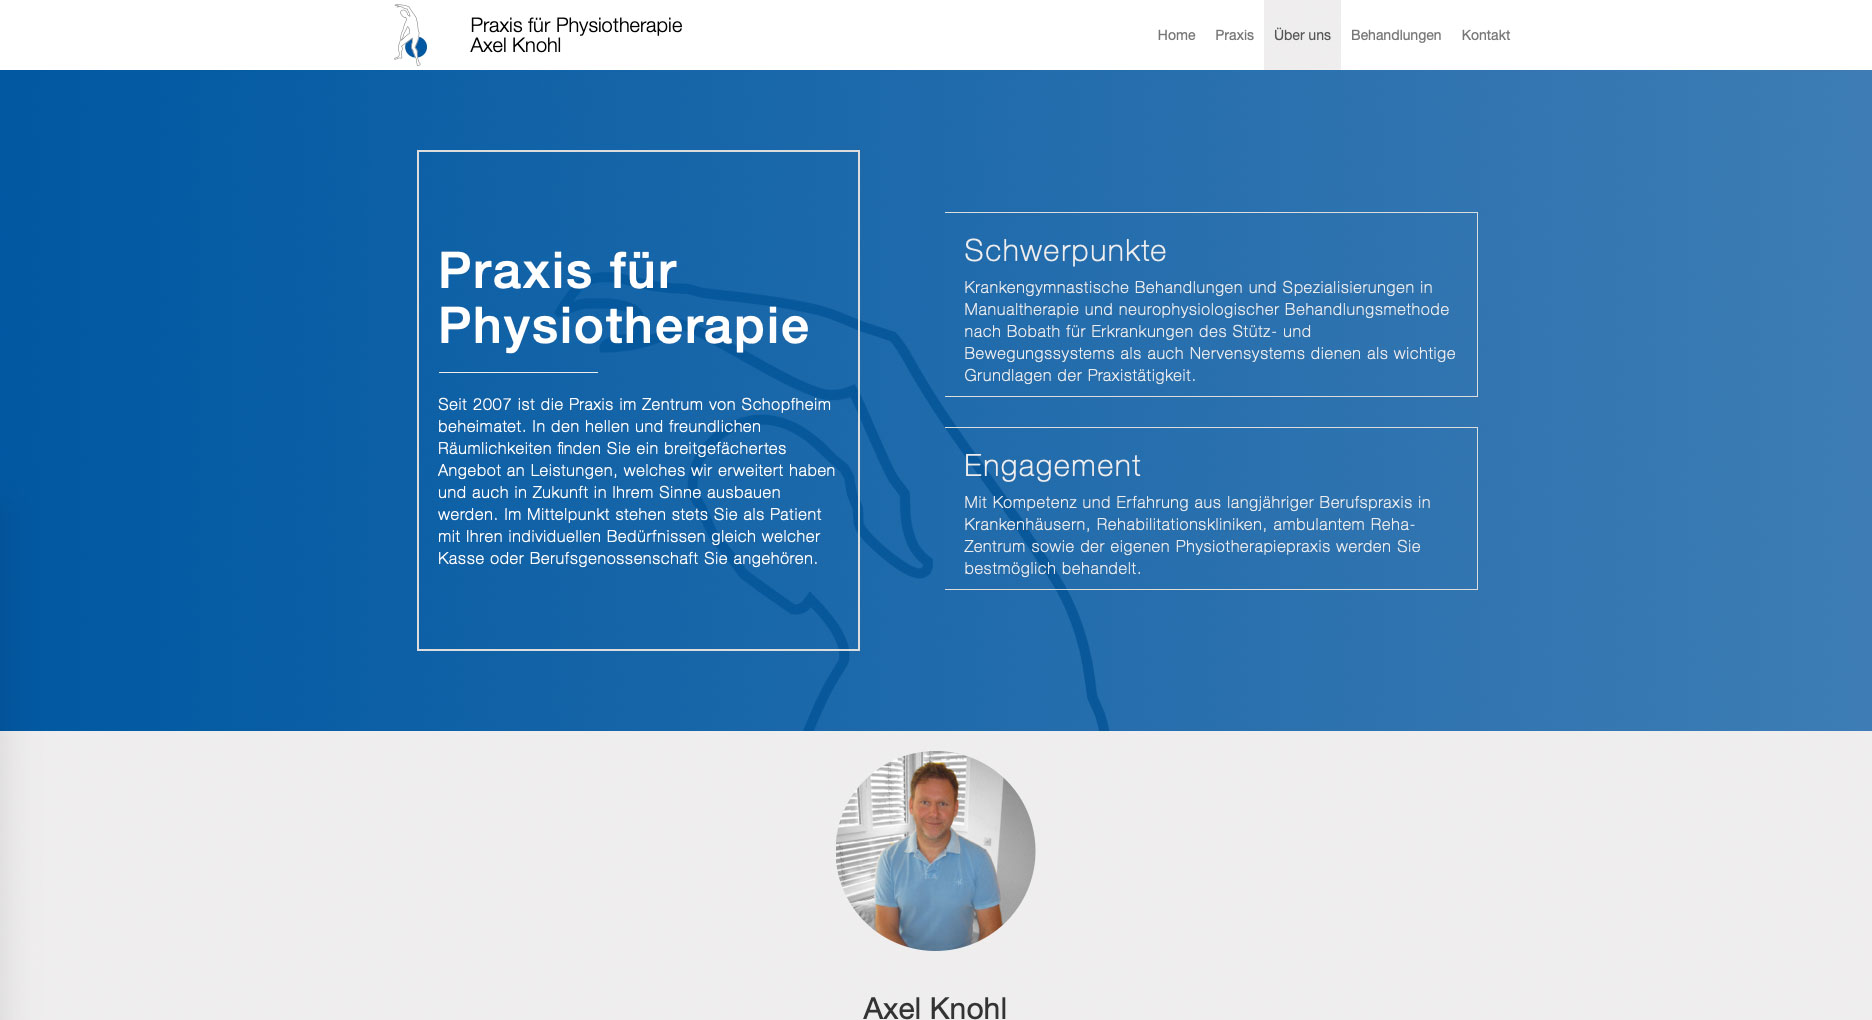 Physiotherapie Axel Knohl Website